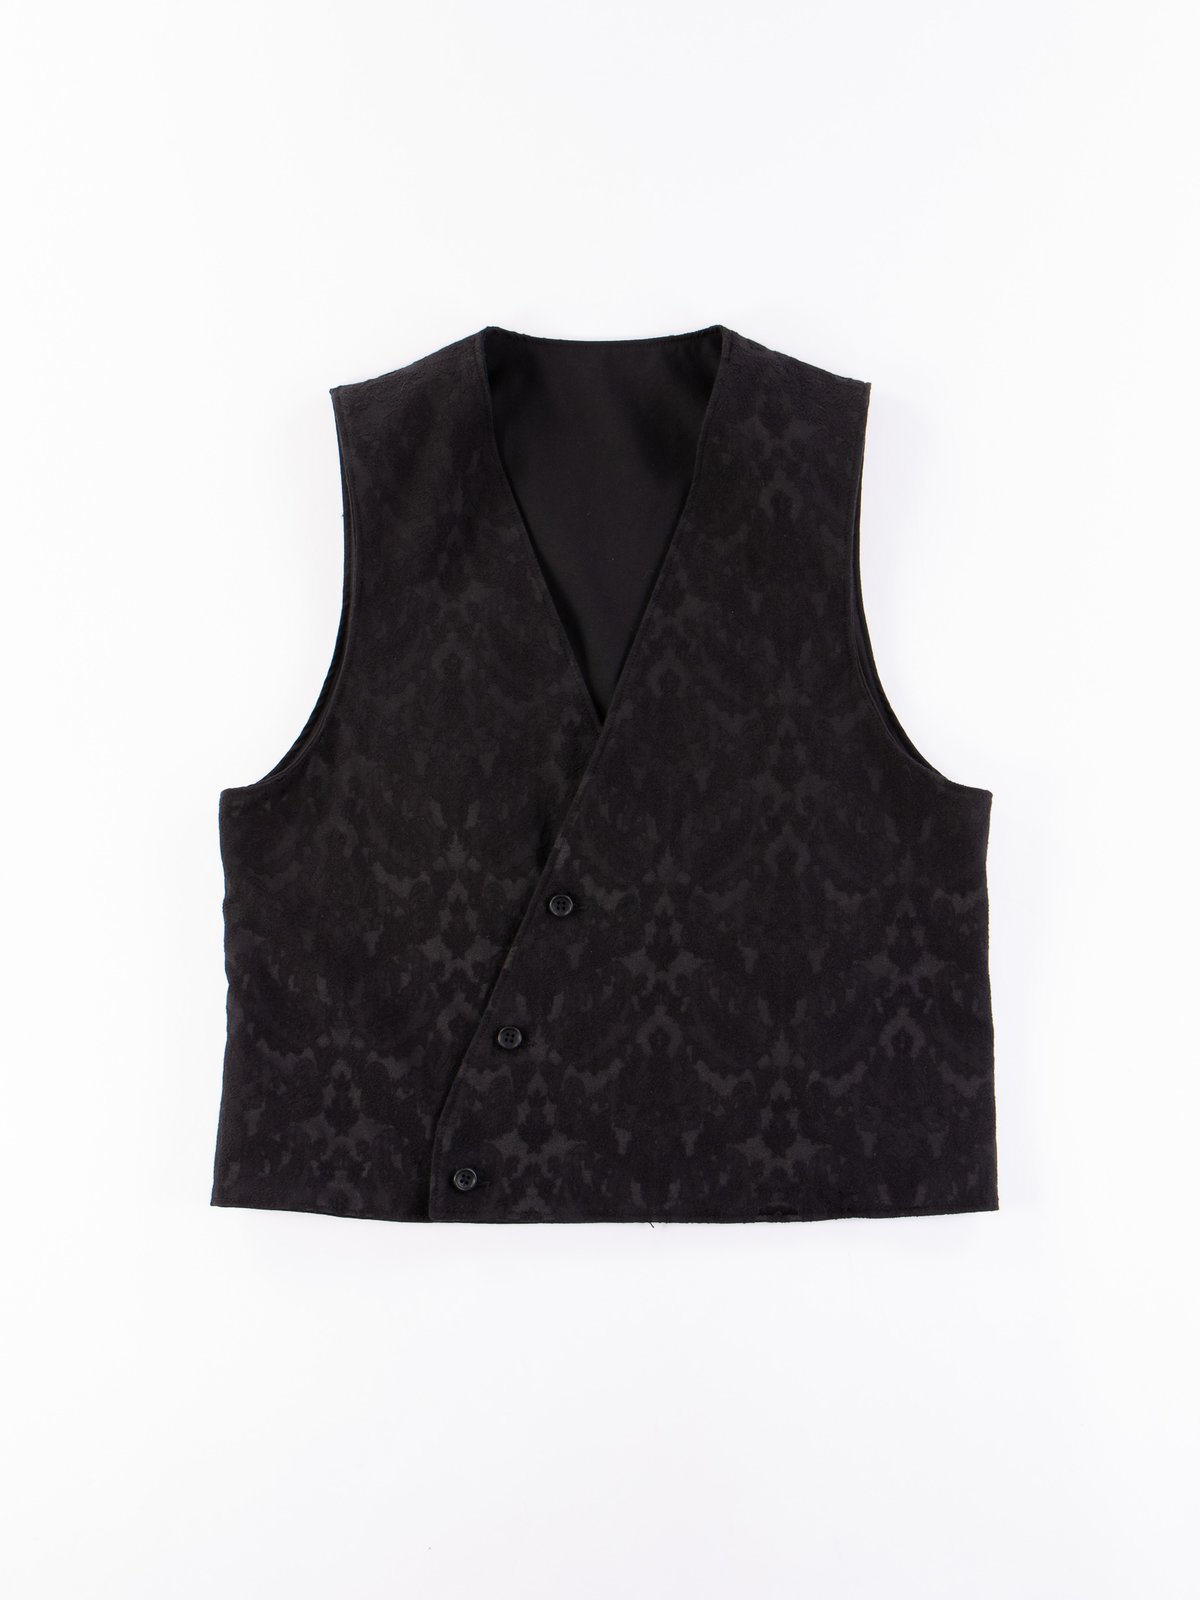 Black Worsted Wool Gabardine Reversible Vest - Image 7